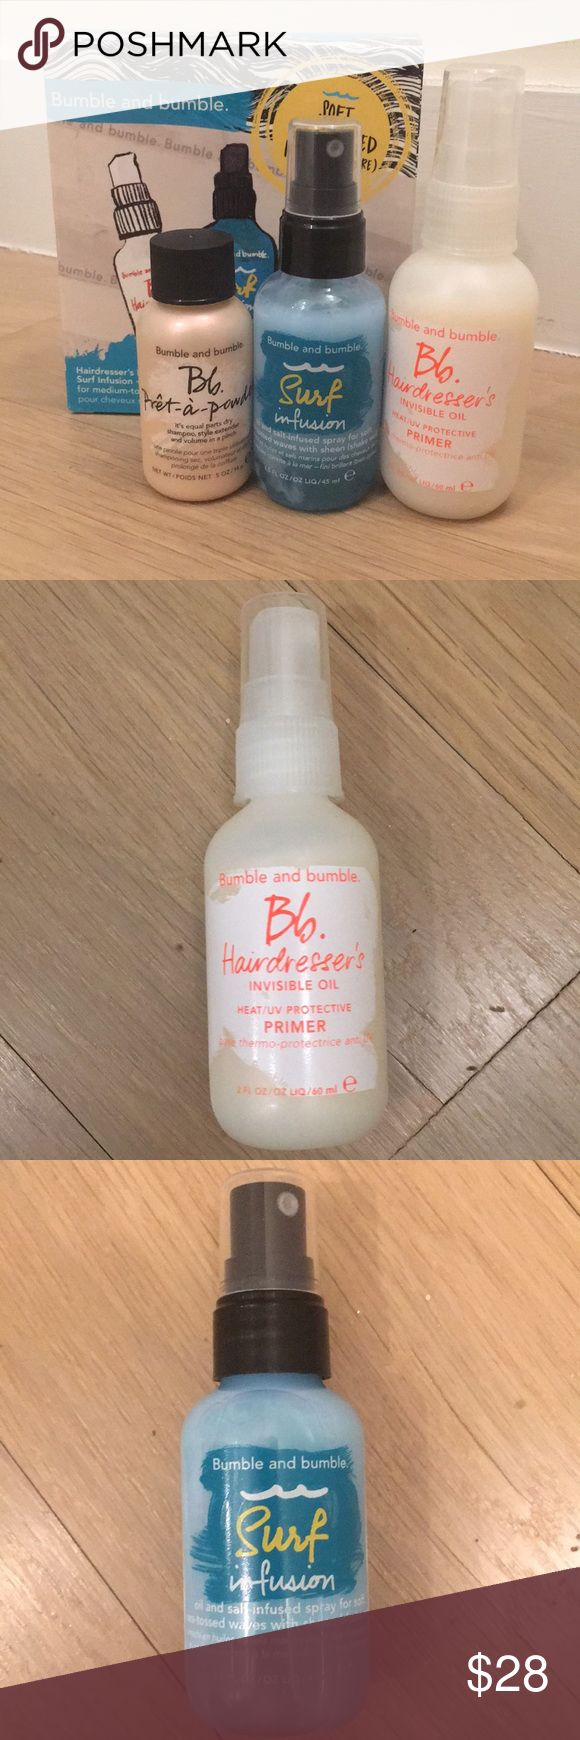 Bumble and bumble hair kit BRAND NEW - set comes with one 2 fl oz Hairdresser's Invisible Oil, one 1.5 fl oz Surf Infusion spray and one .5 oz prêt-a-powder dry shampoo. Perfect for travel! Bumble and bumble Other